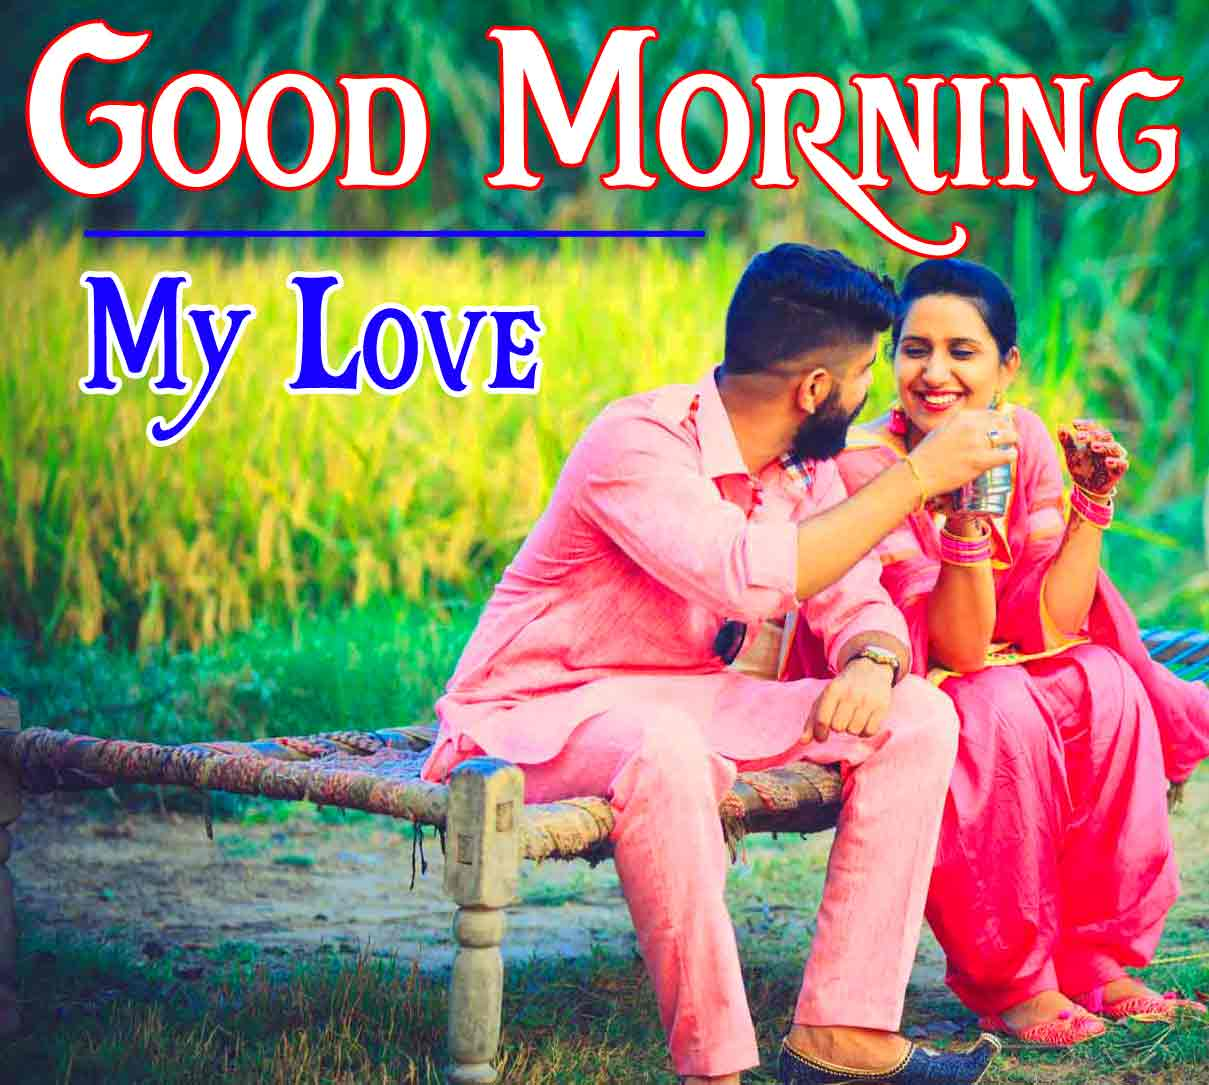 Good Morning 4k HD Images HD Pics With Punjabi Couple